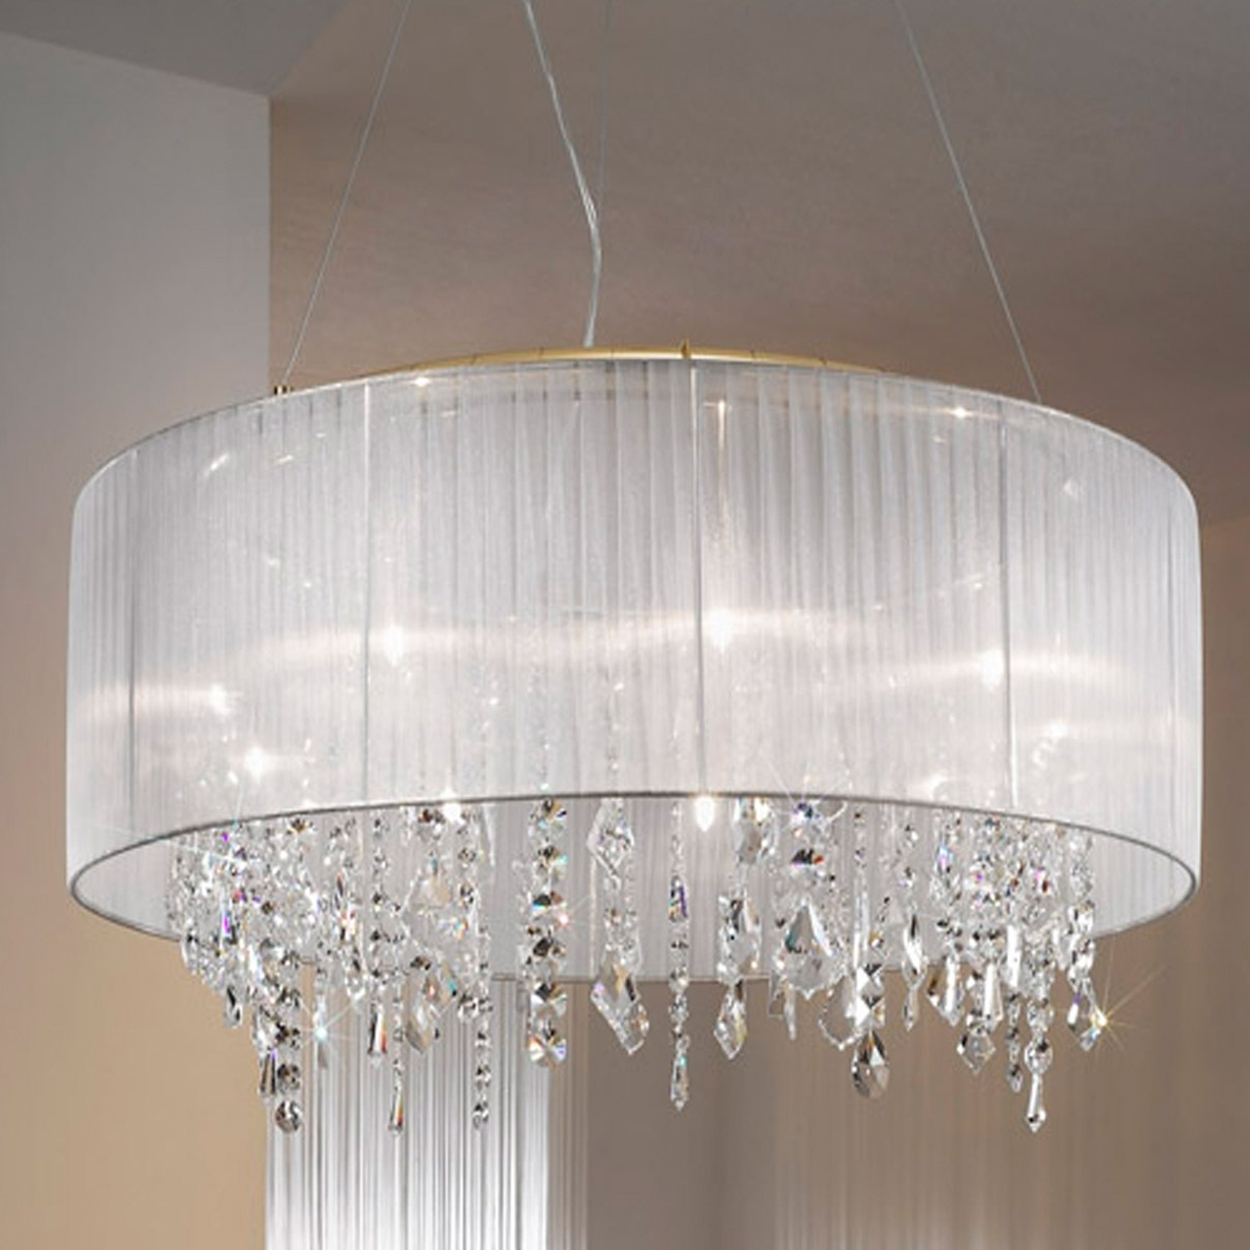 Famous Glamorous Barrel Lamp Shade Chandelier Drum Chandeliers Shades Of Regarding Lampshade Chandeliers (View 6 of 20)